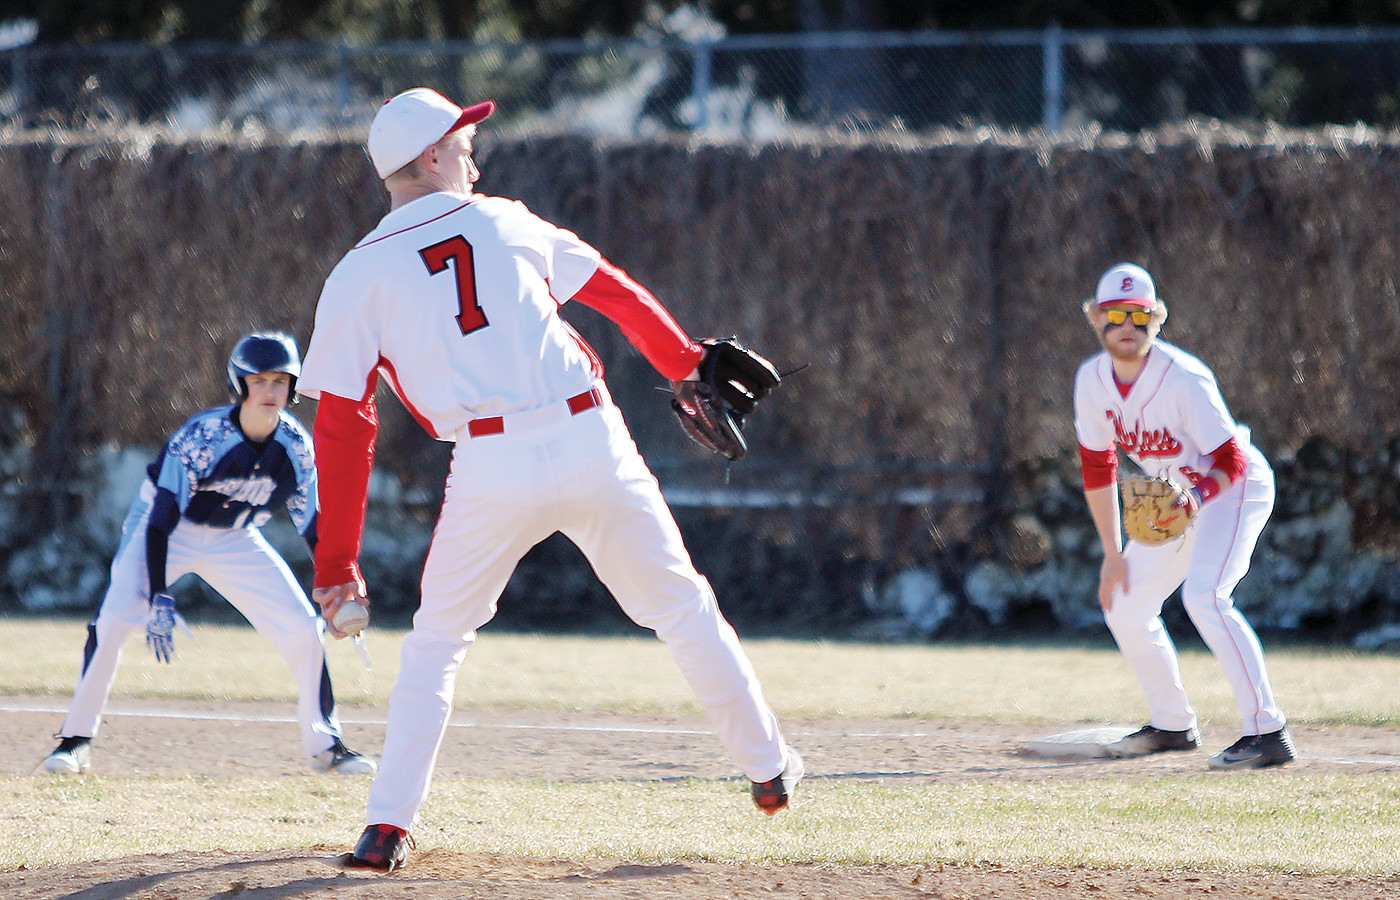 Ely pitcher Trevor Mattson winds up while other 